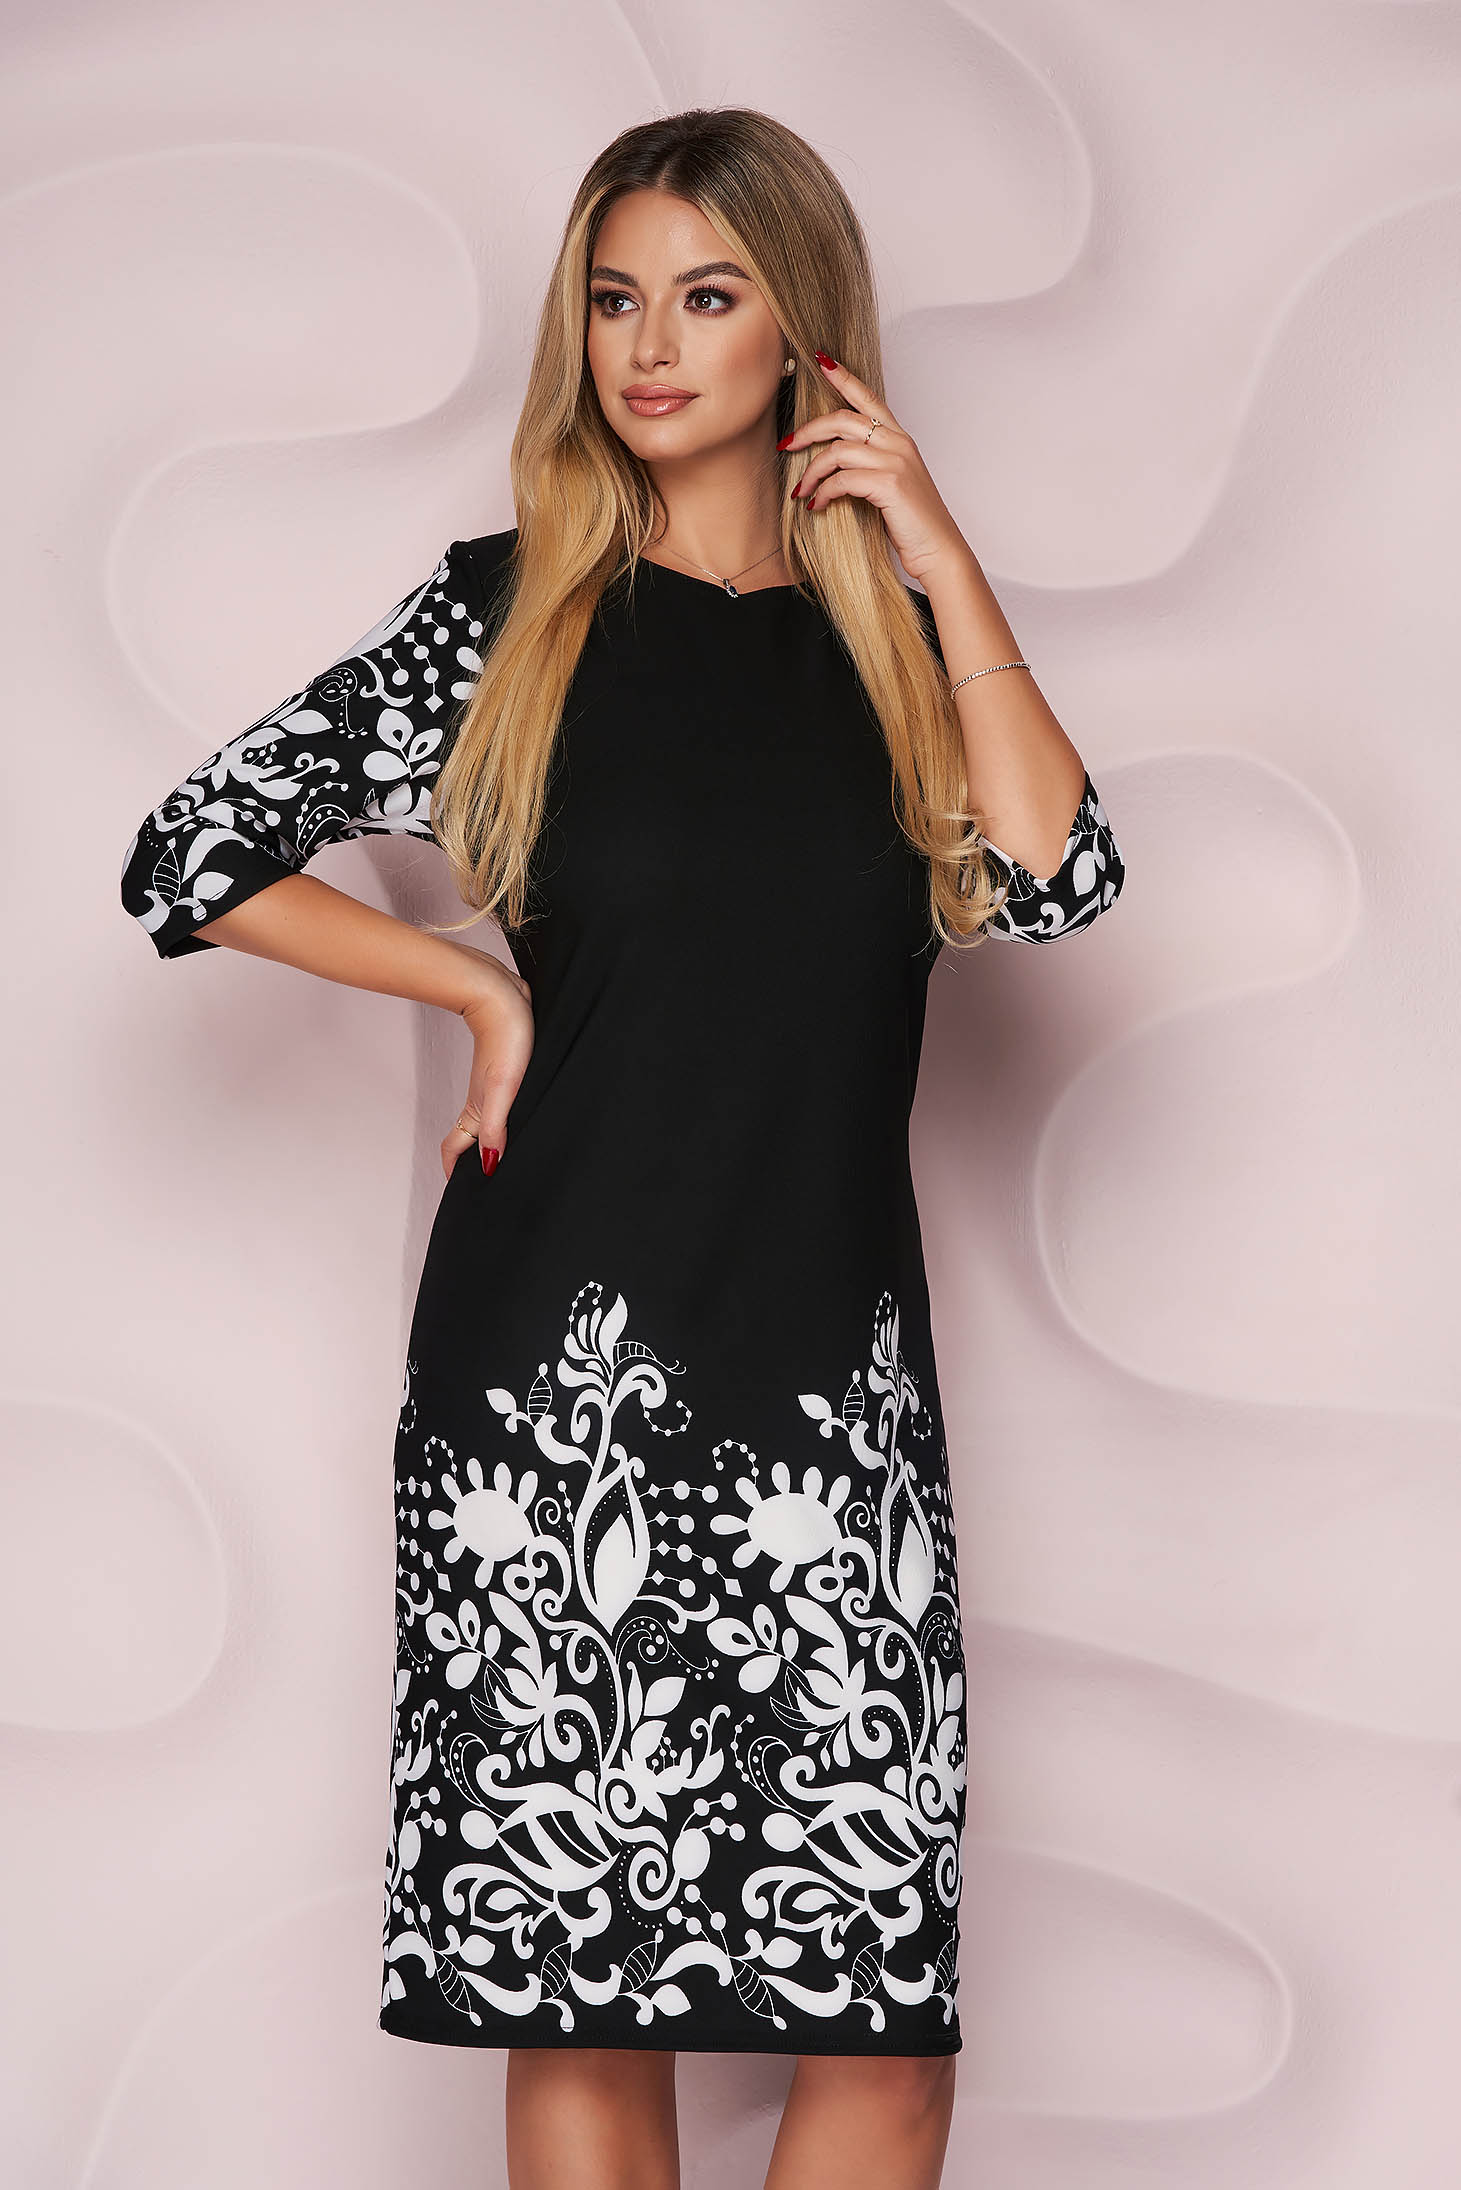 Black office dress straight midi thin fabric with graphic details slightly elastic fabric